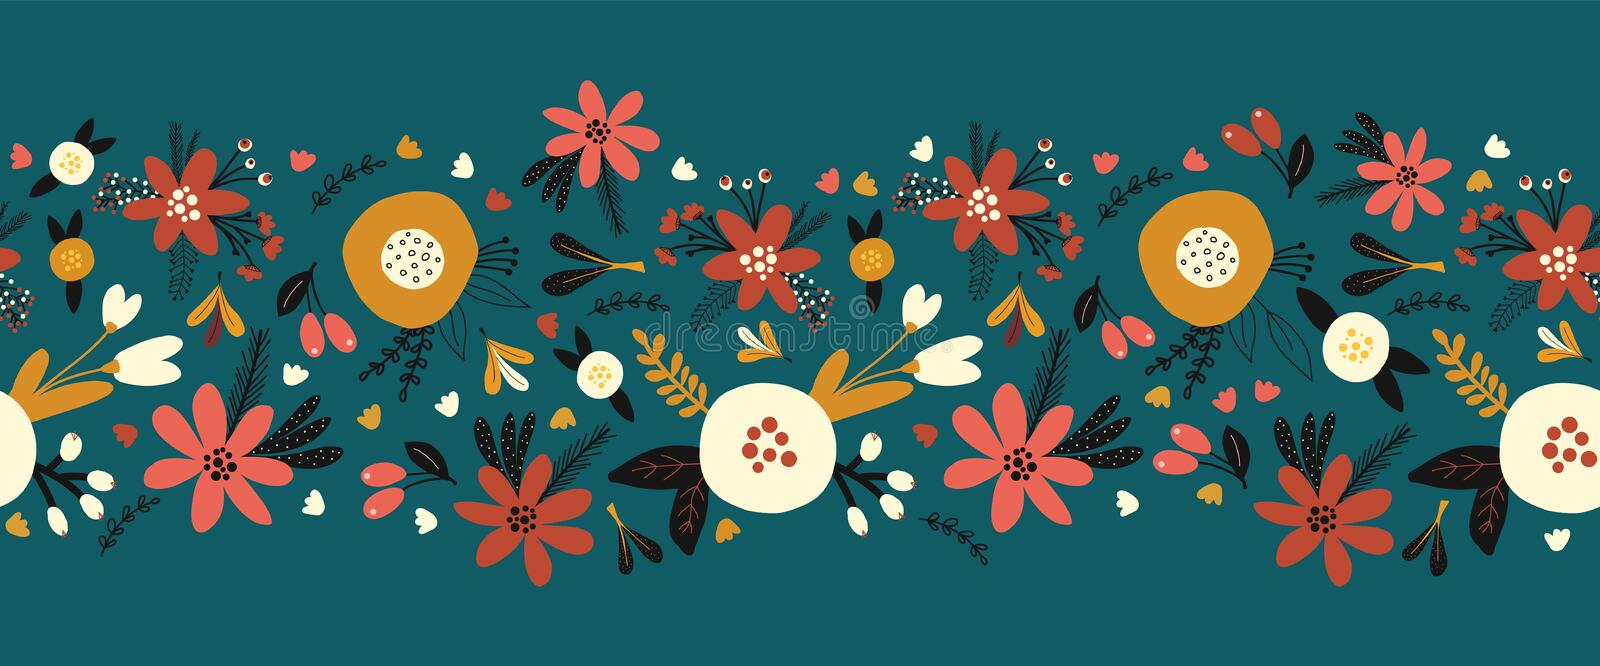 Winter autumn flowers seamless vector border. Florals and leaves pattern. Hand drawn holiday design Scandinavian style.  royalty free illustration